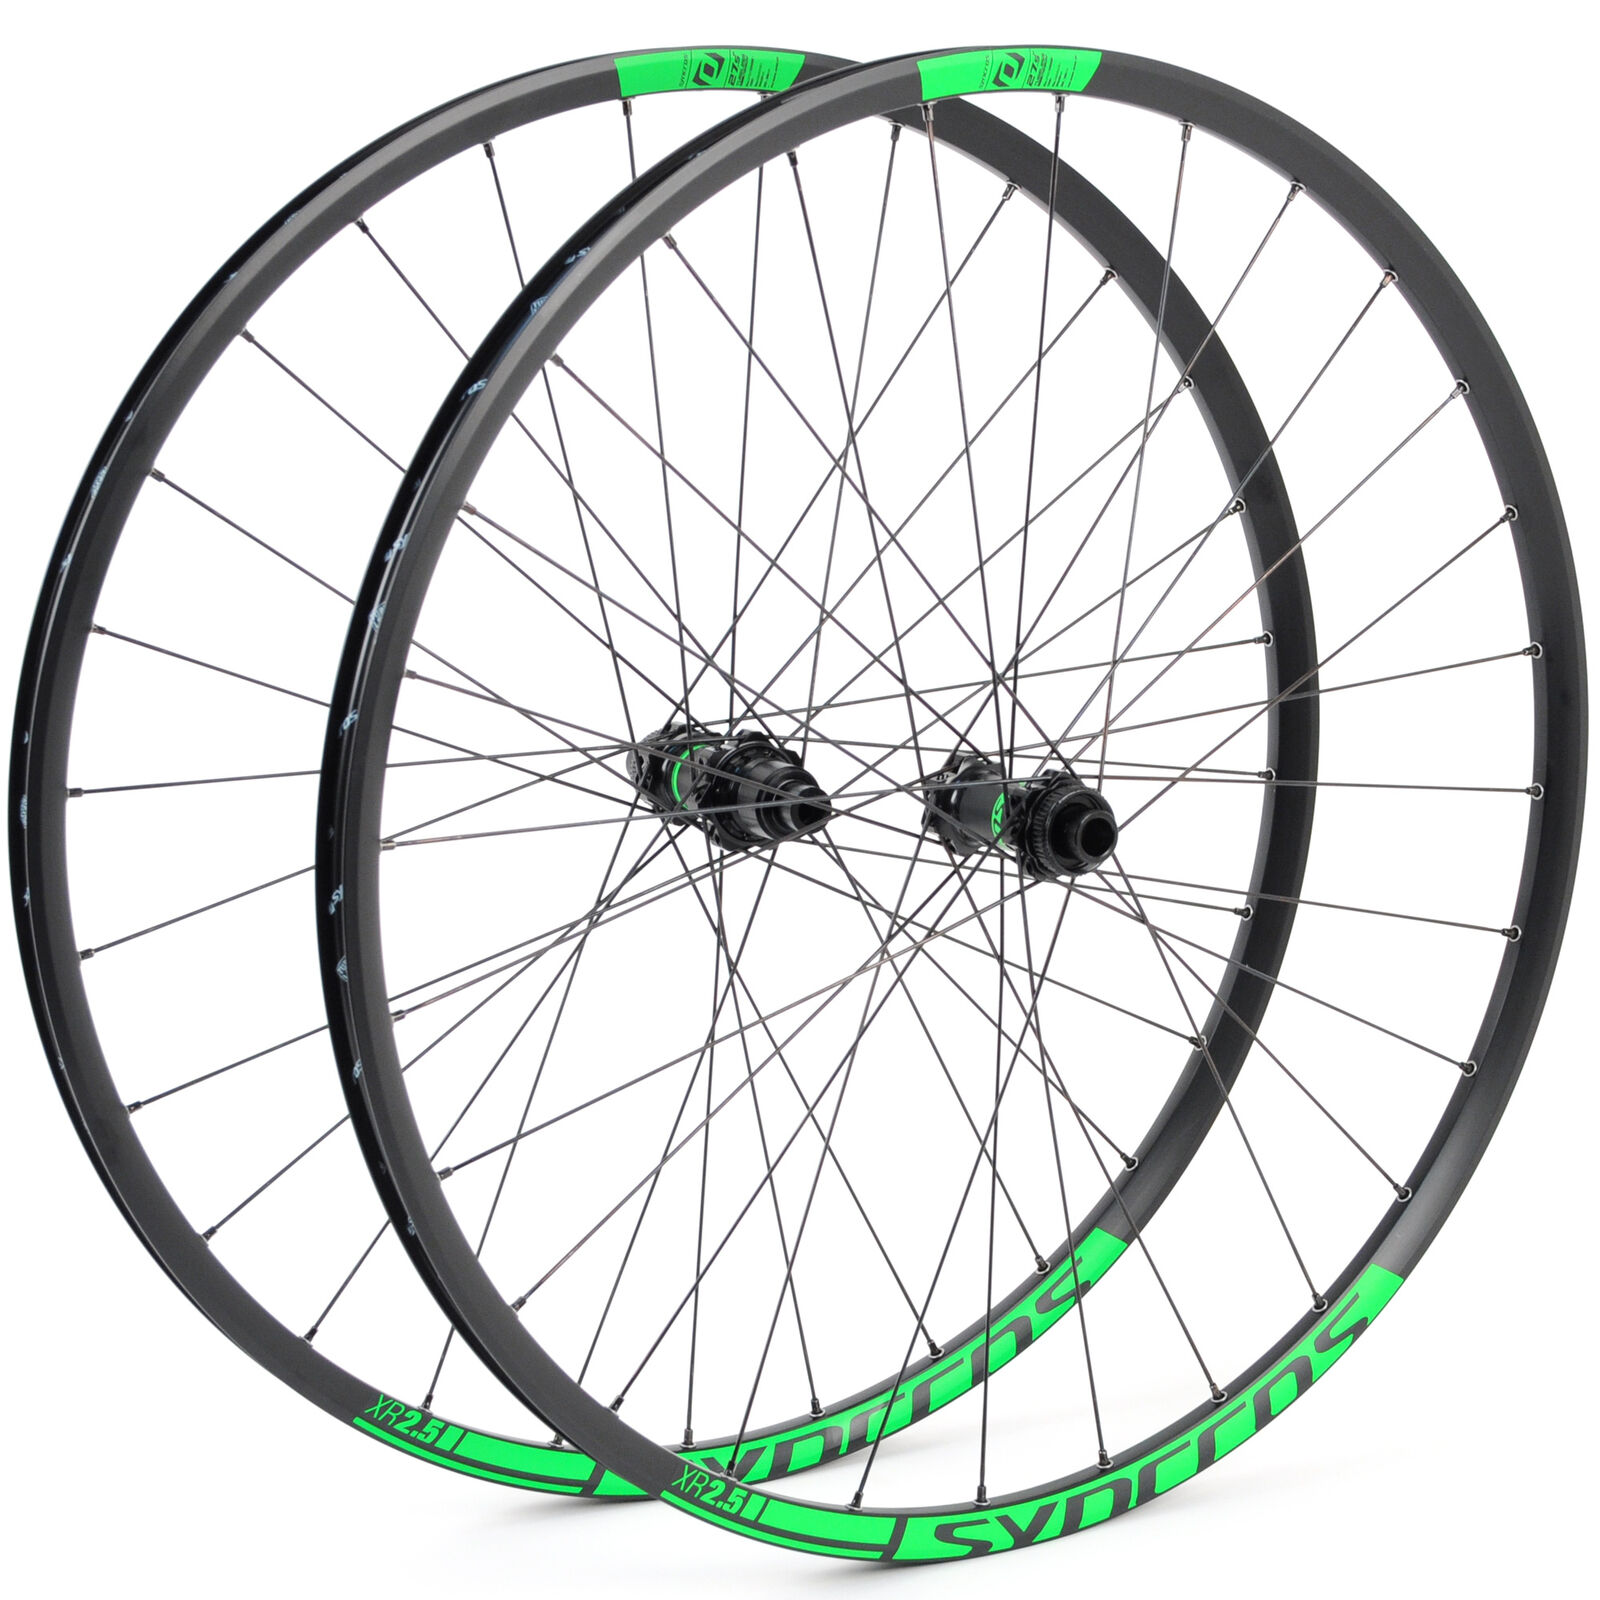 DT Swiss Syncros XR2.5 27.5  Mountain Bike TLR Wheelset    15x100mm    12x142mm